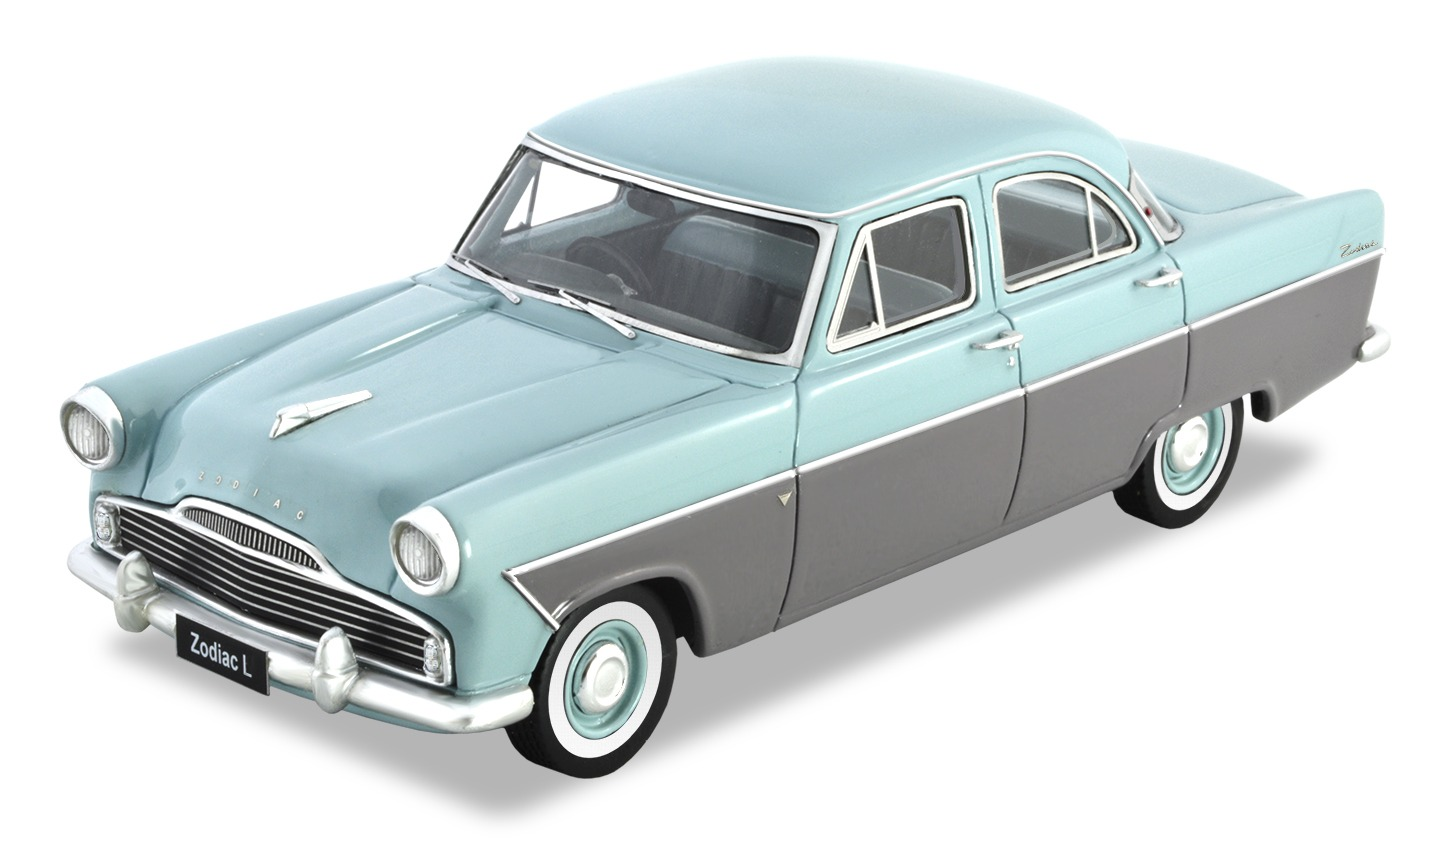 Ford Zodiac Lowline – Emu Grey / Starlight Blue